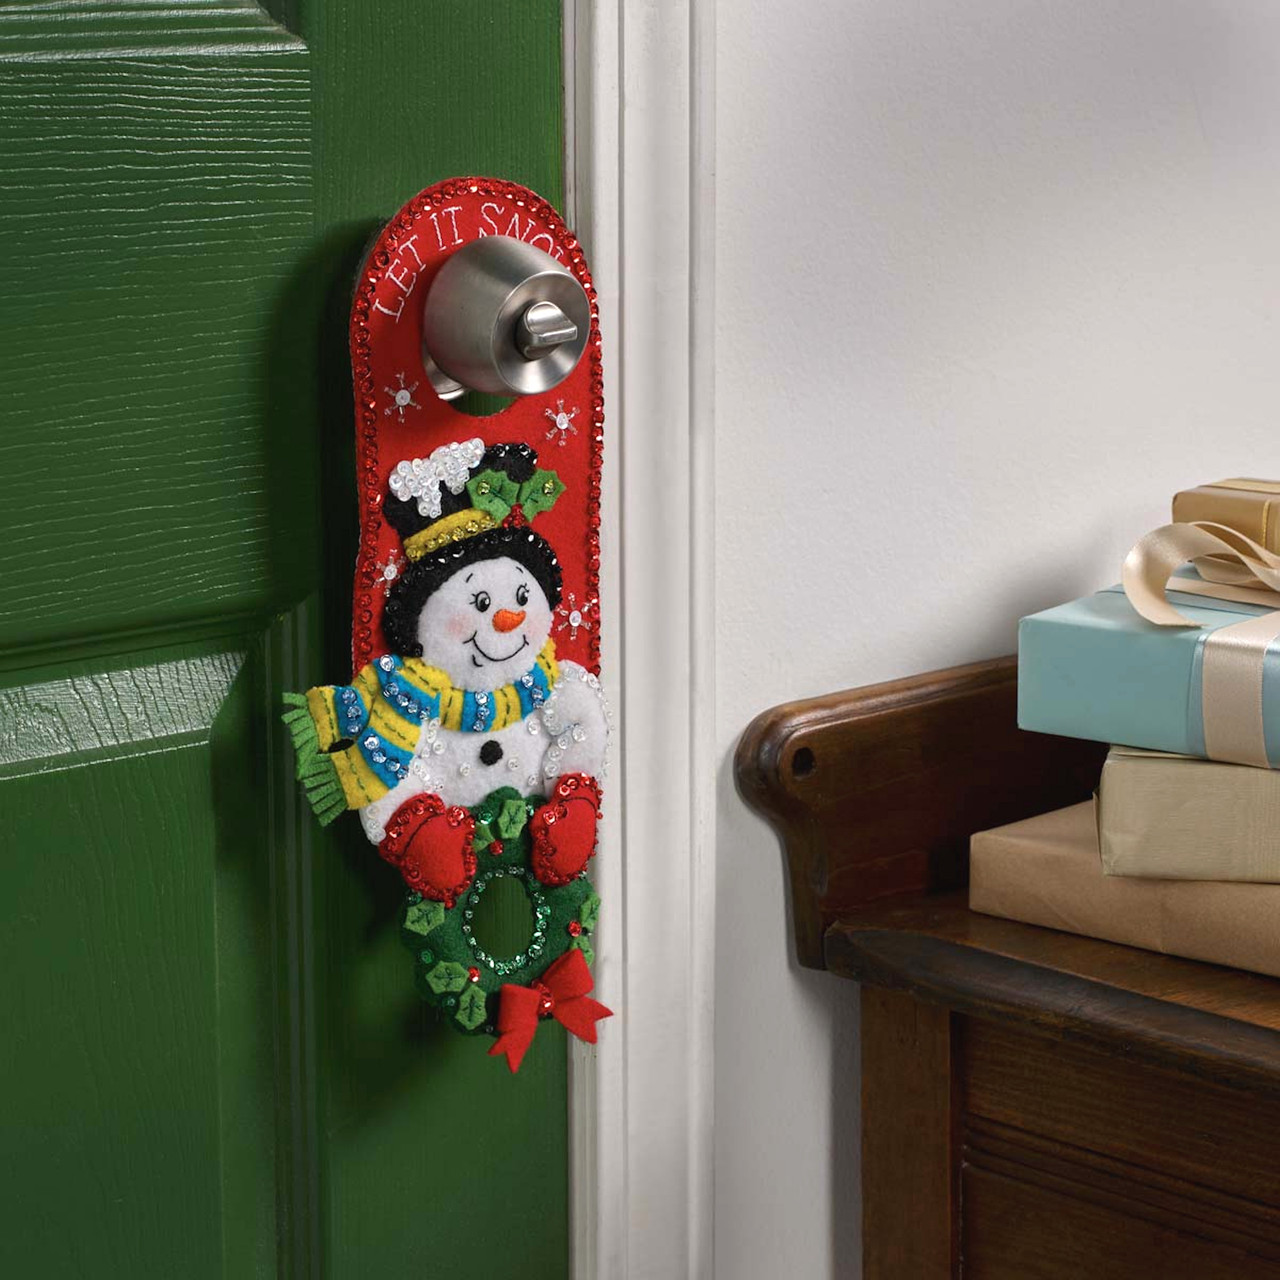 Plaid / Bucilla - Christmas Greetings Door Hangers